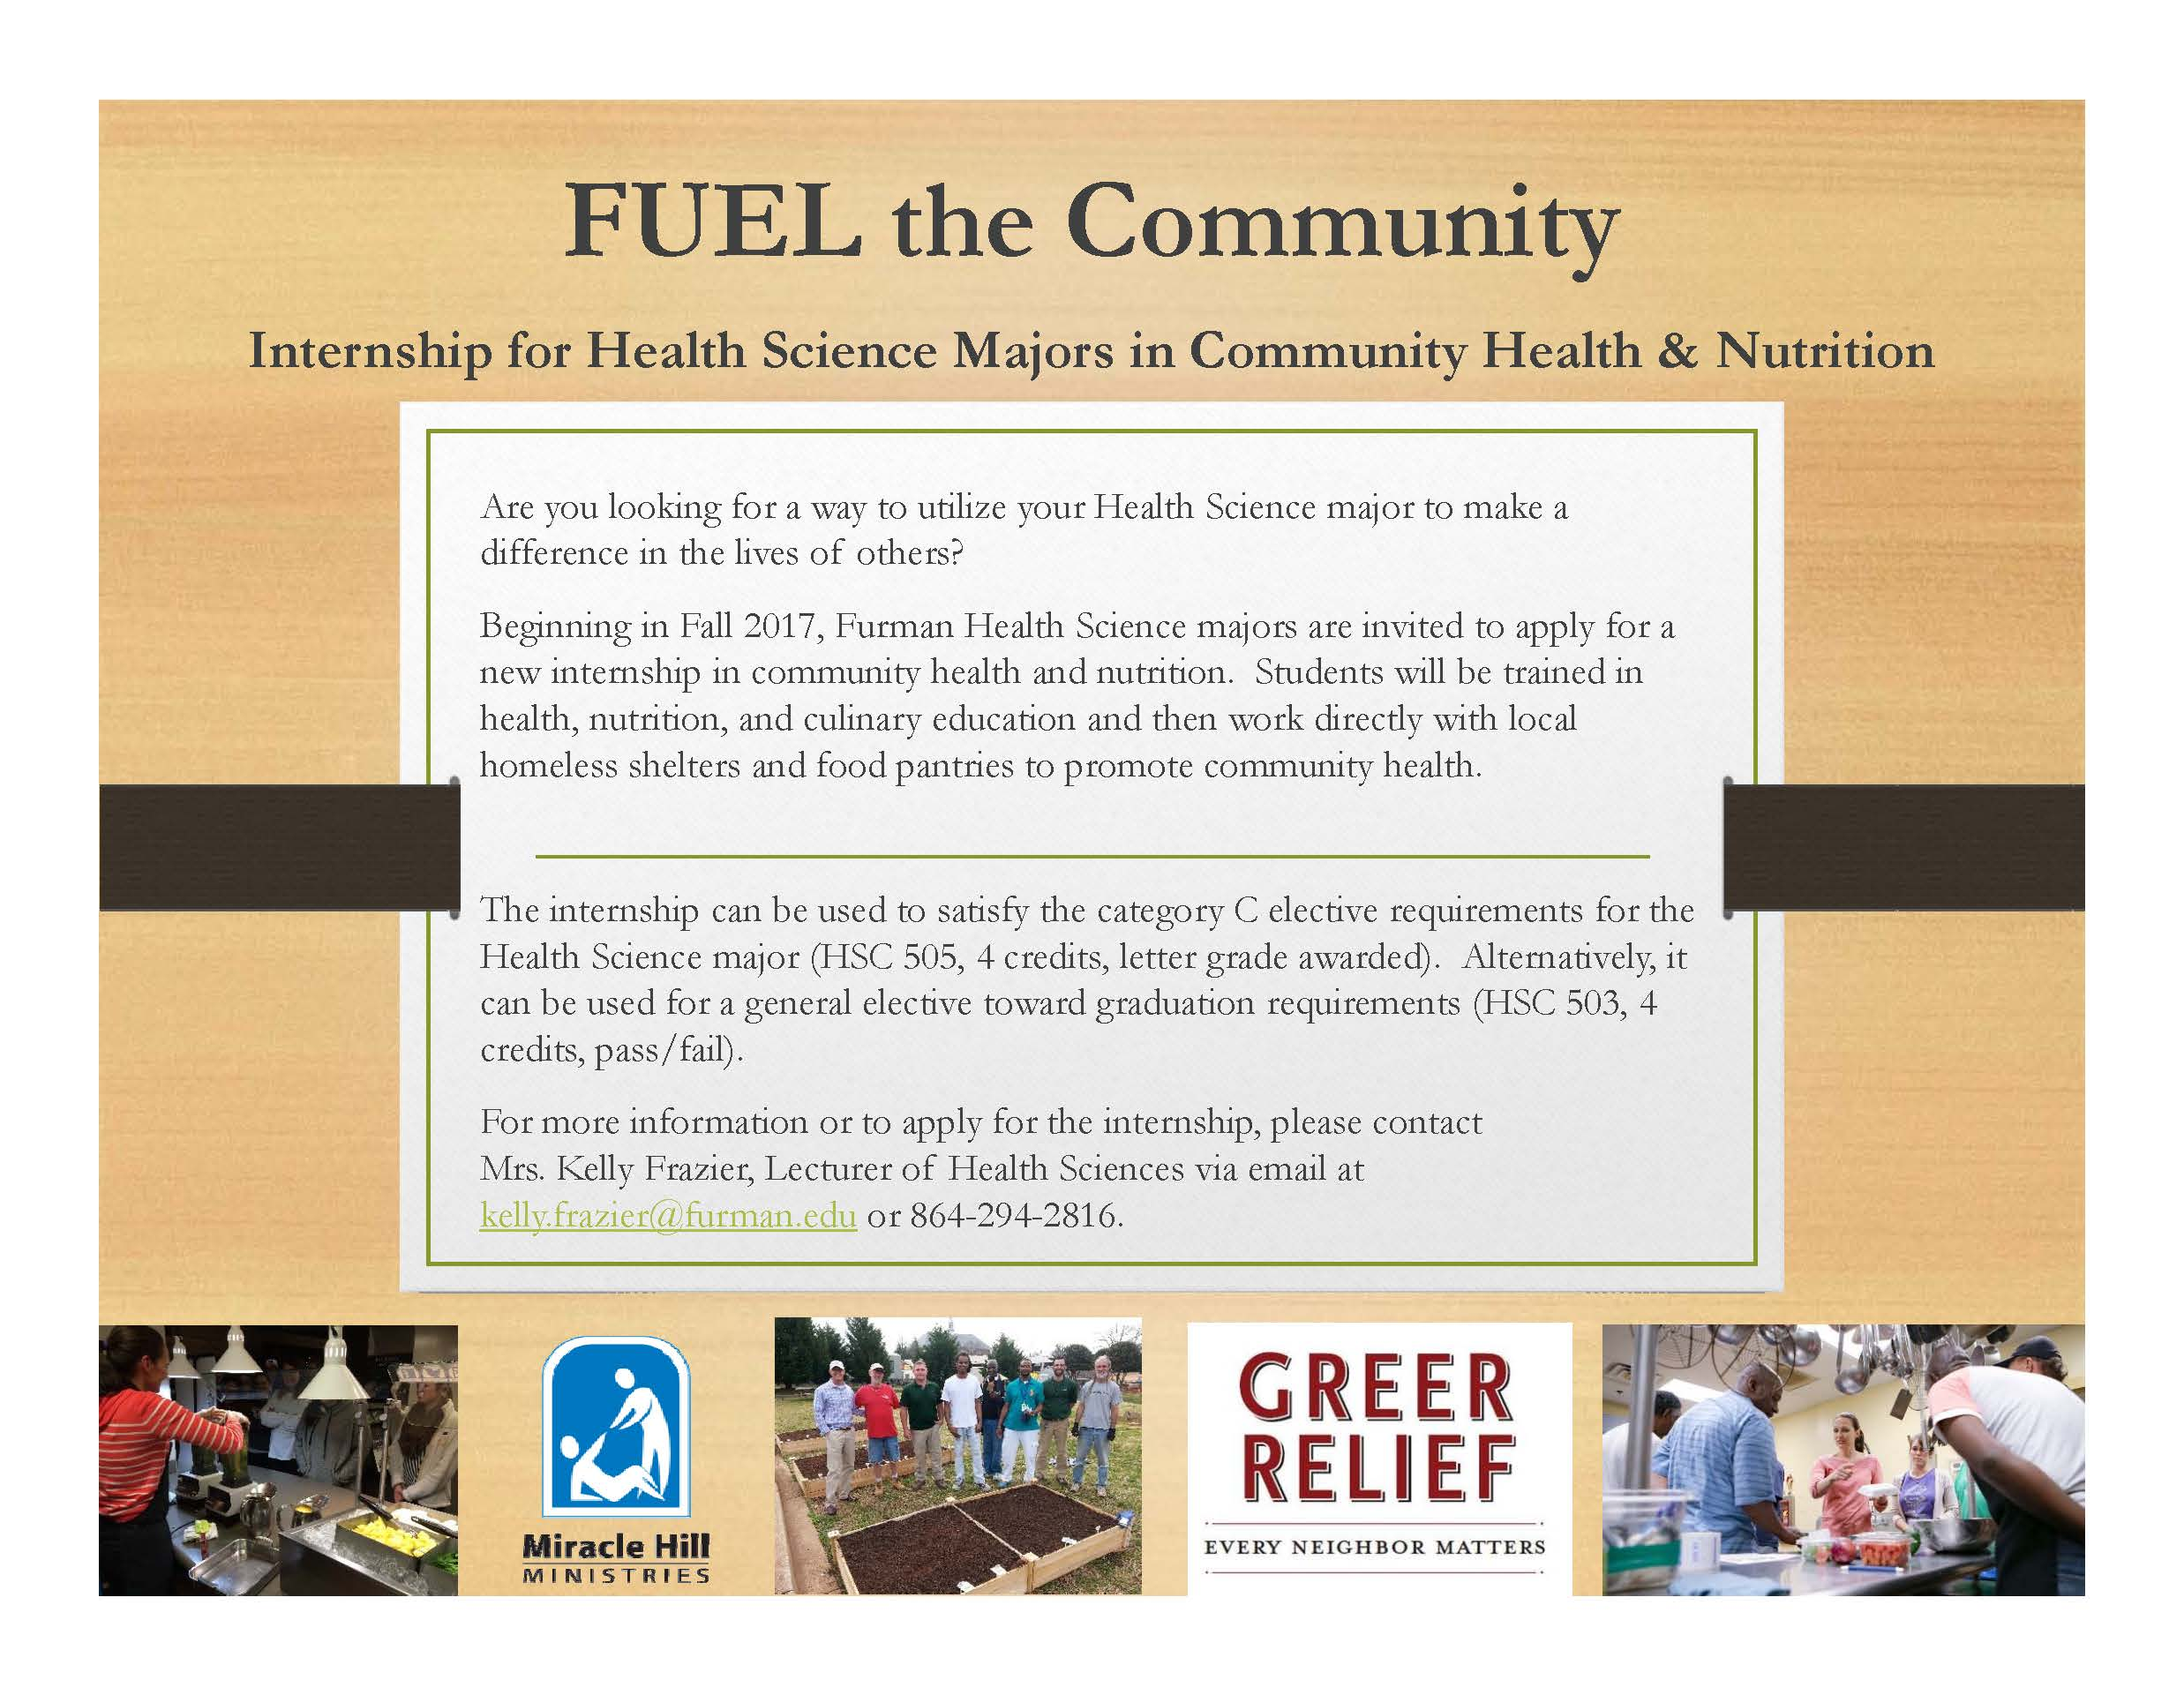 FUEL the munity Internship for Health Science Majors in